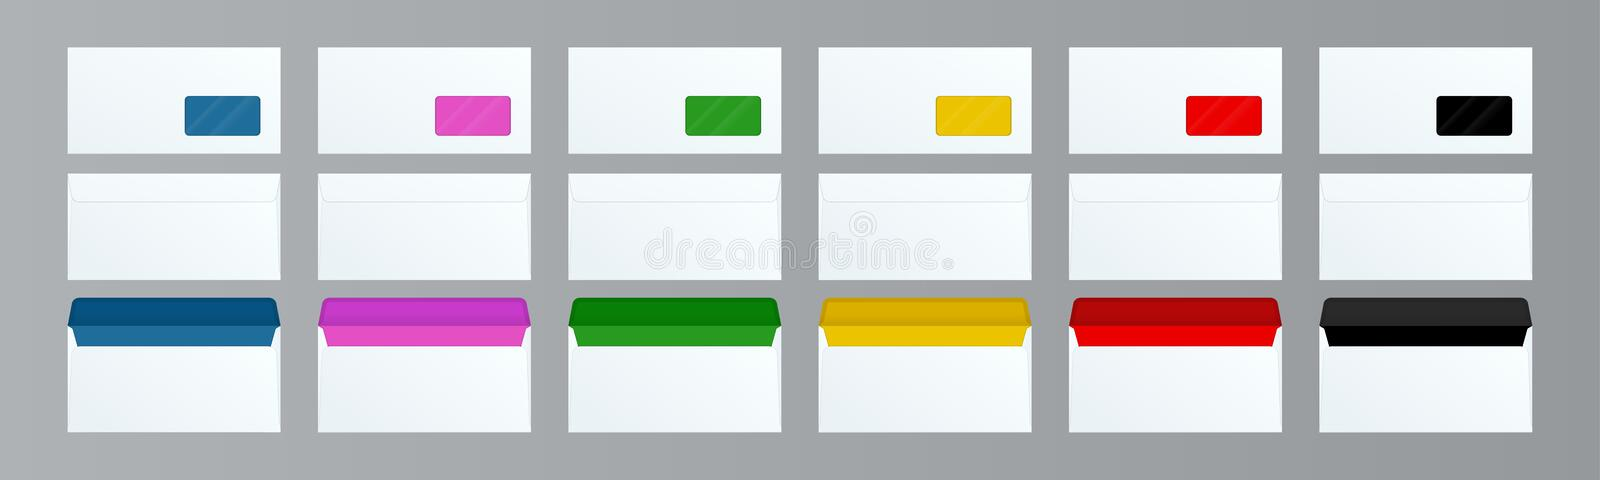 Set of DL Envelopes mockup front and back view for office document or message. White empty mail envelope with stock illustration